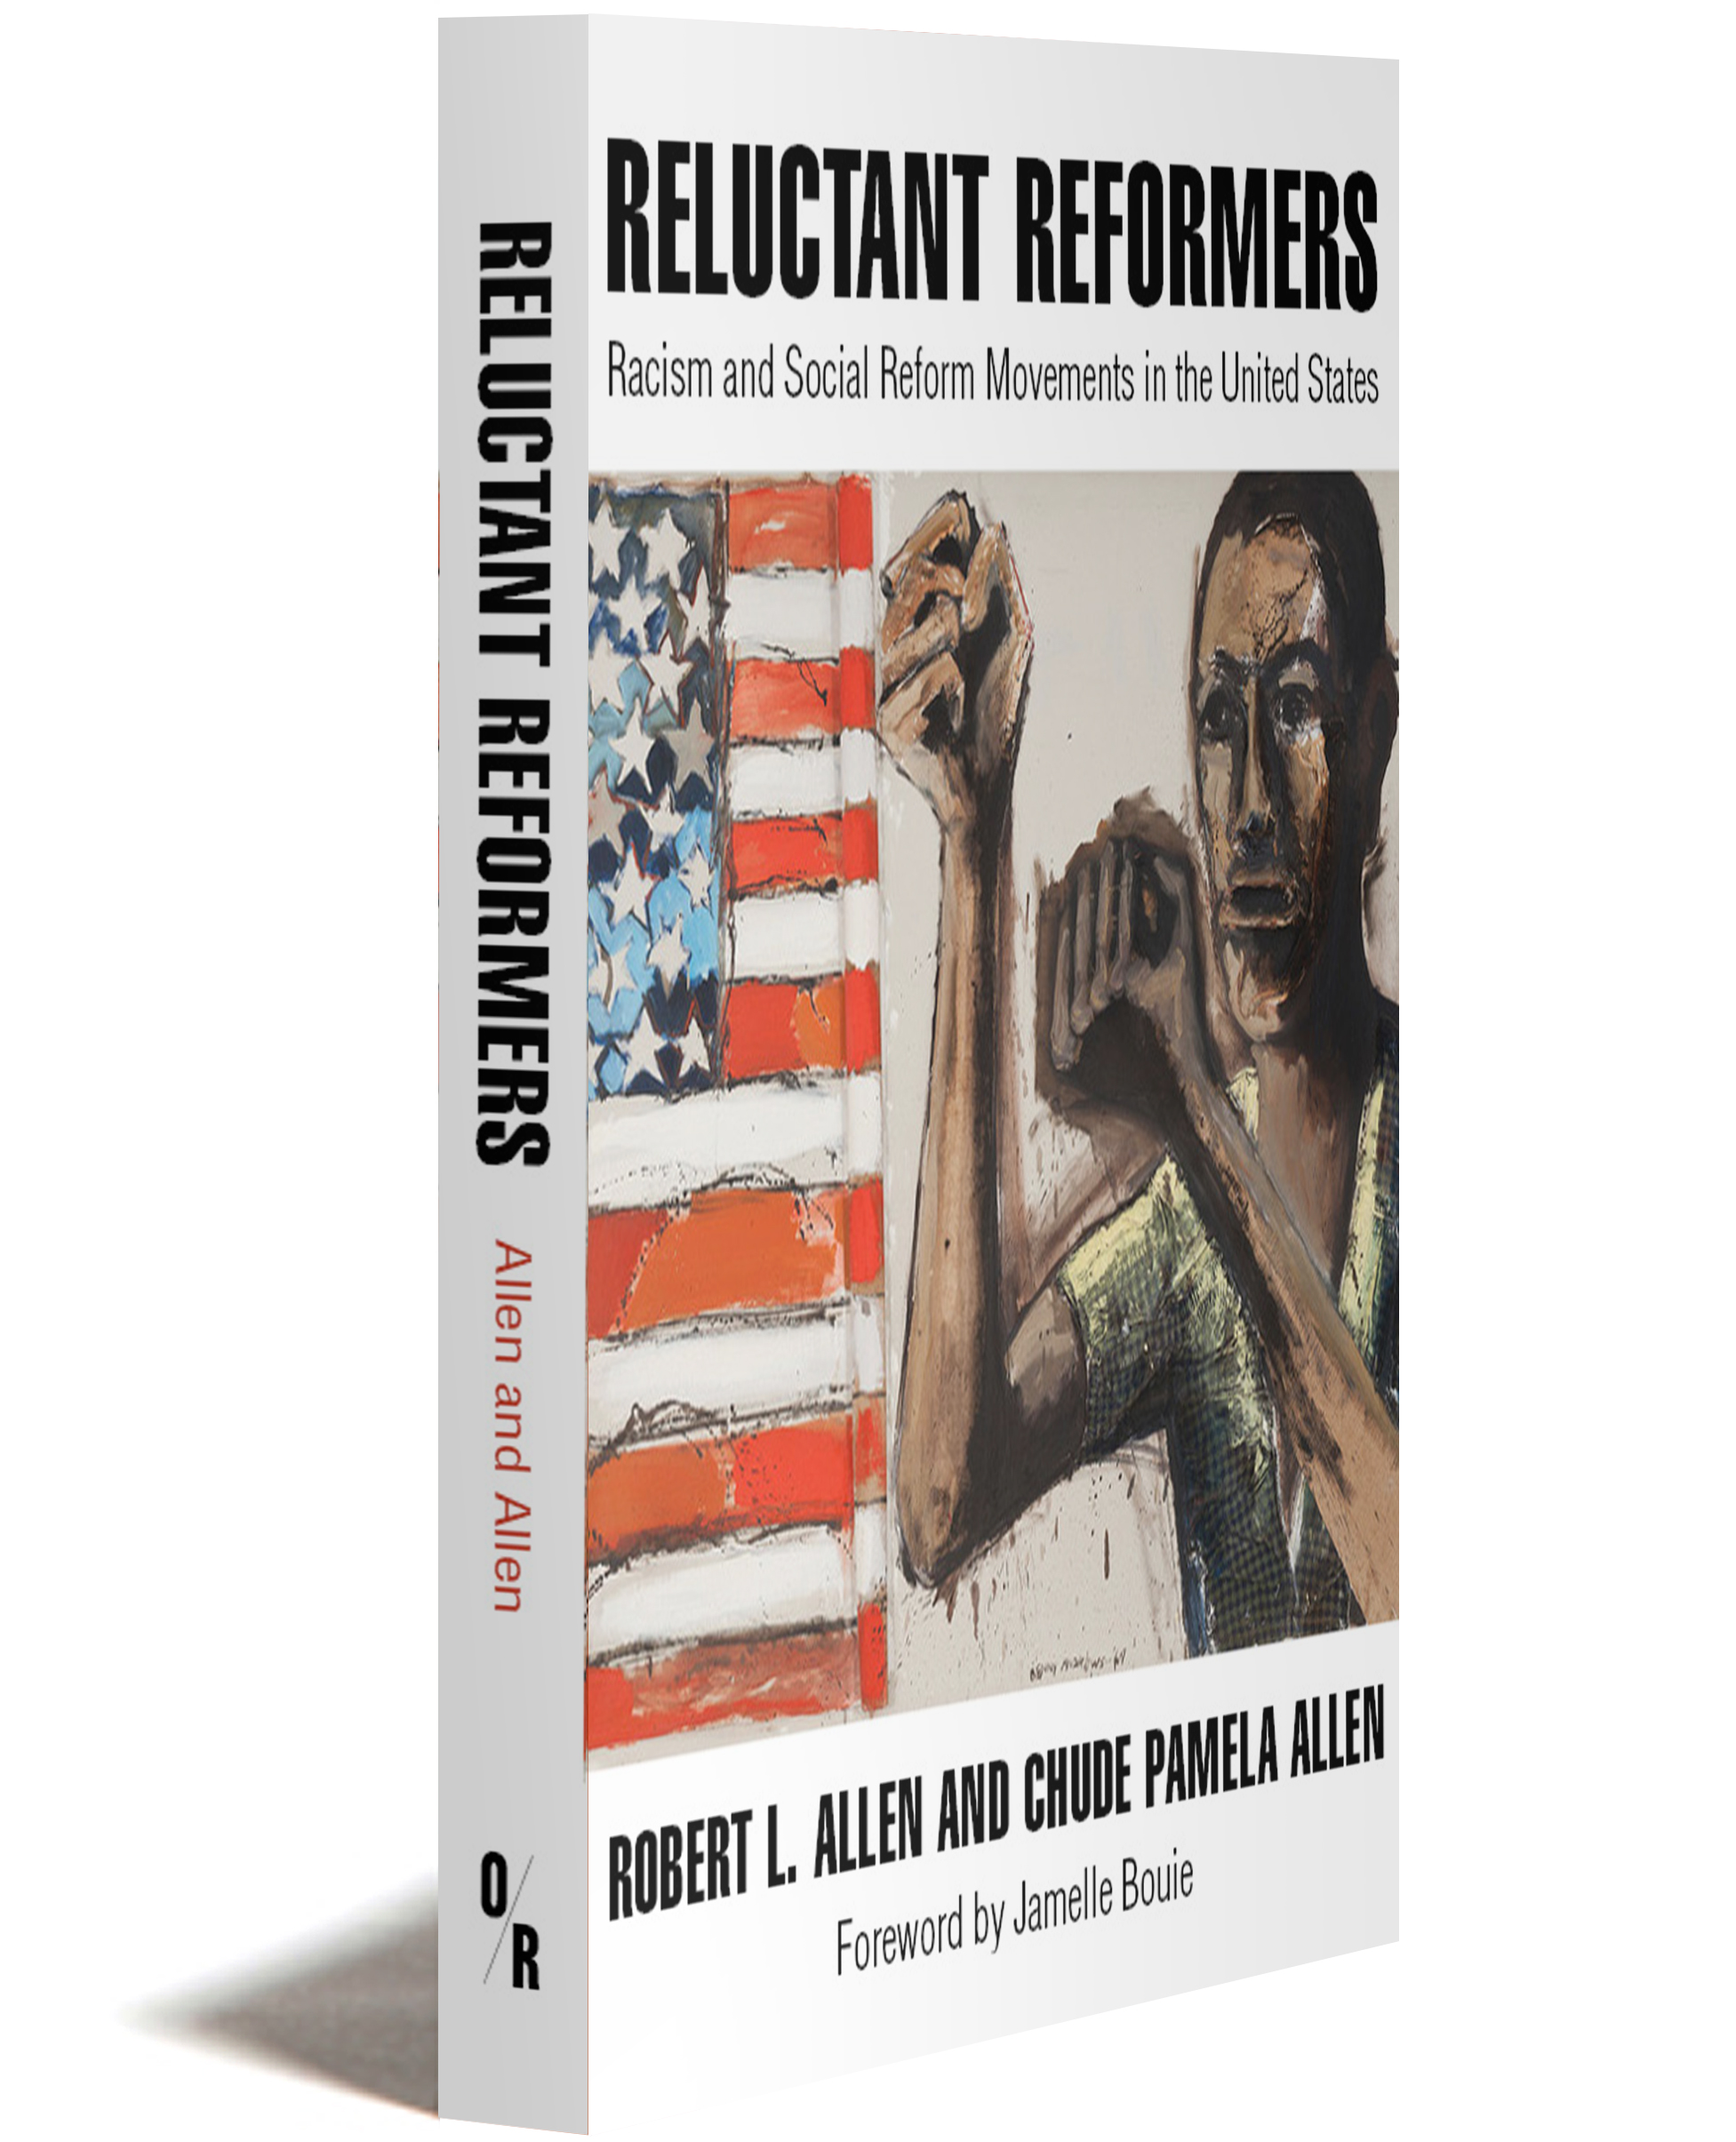 reluctant reformers cover